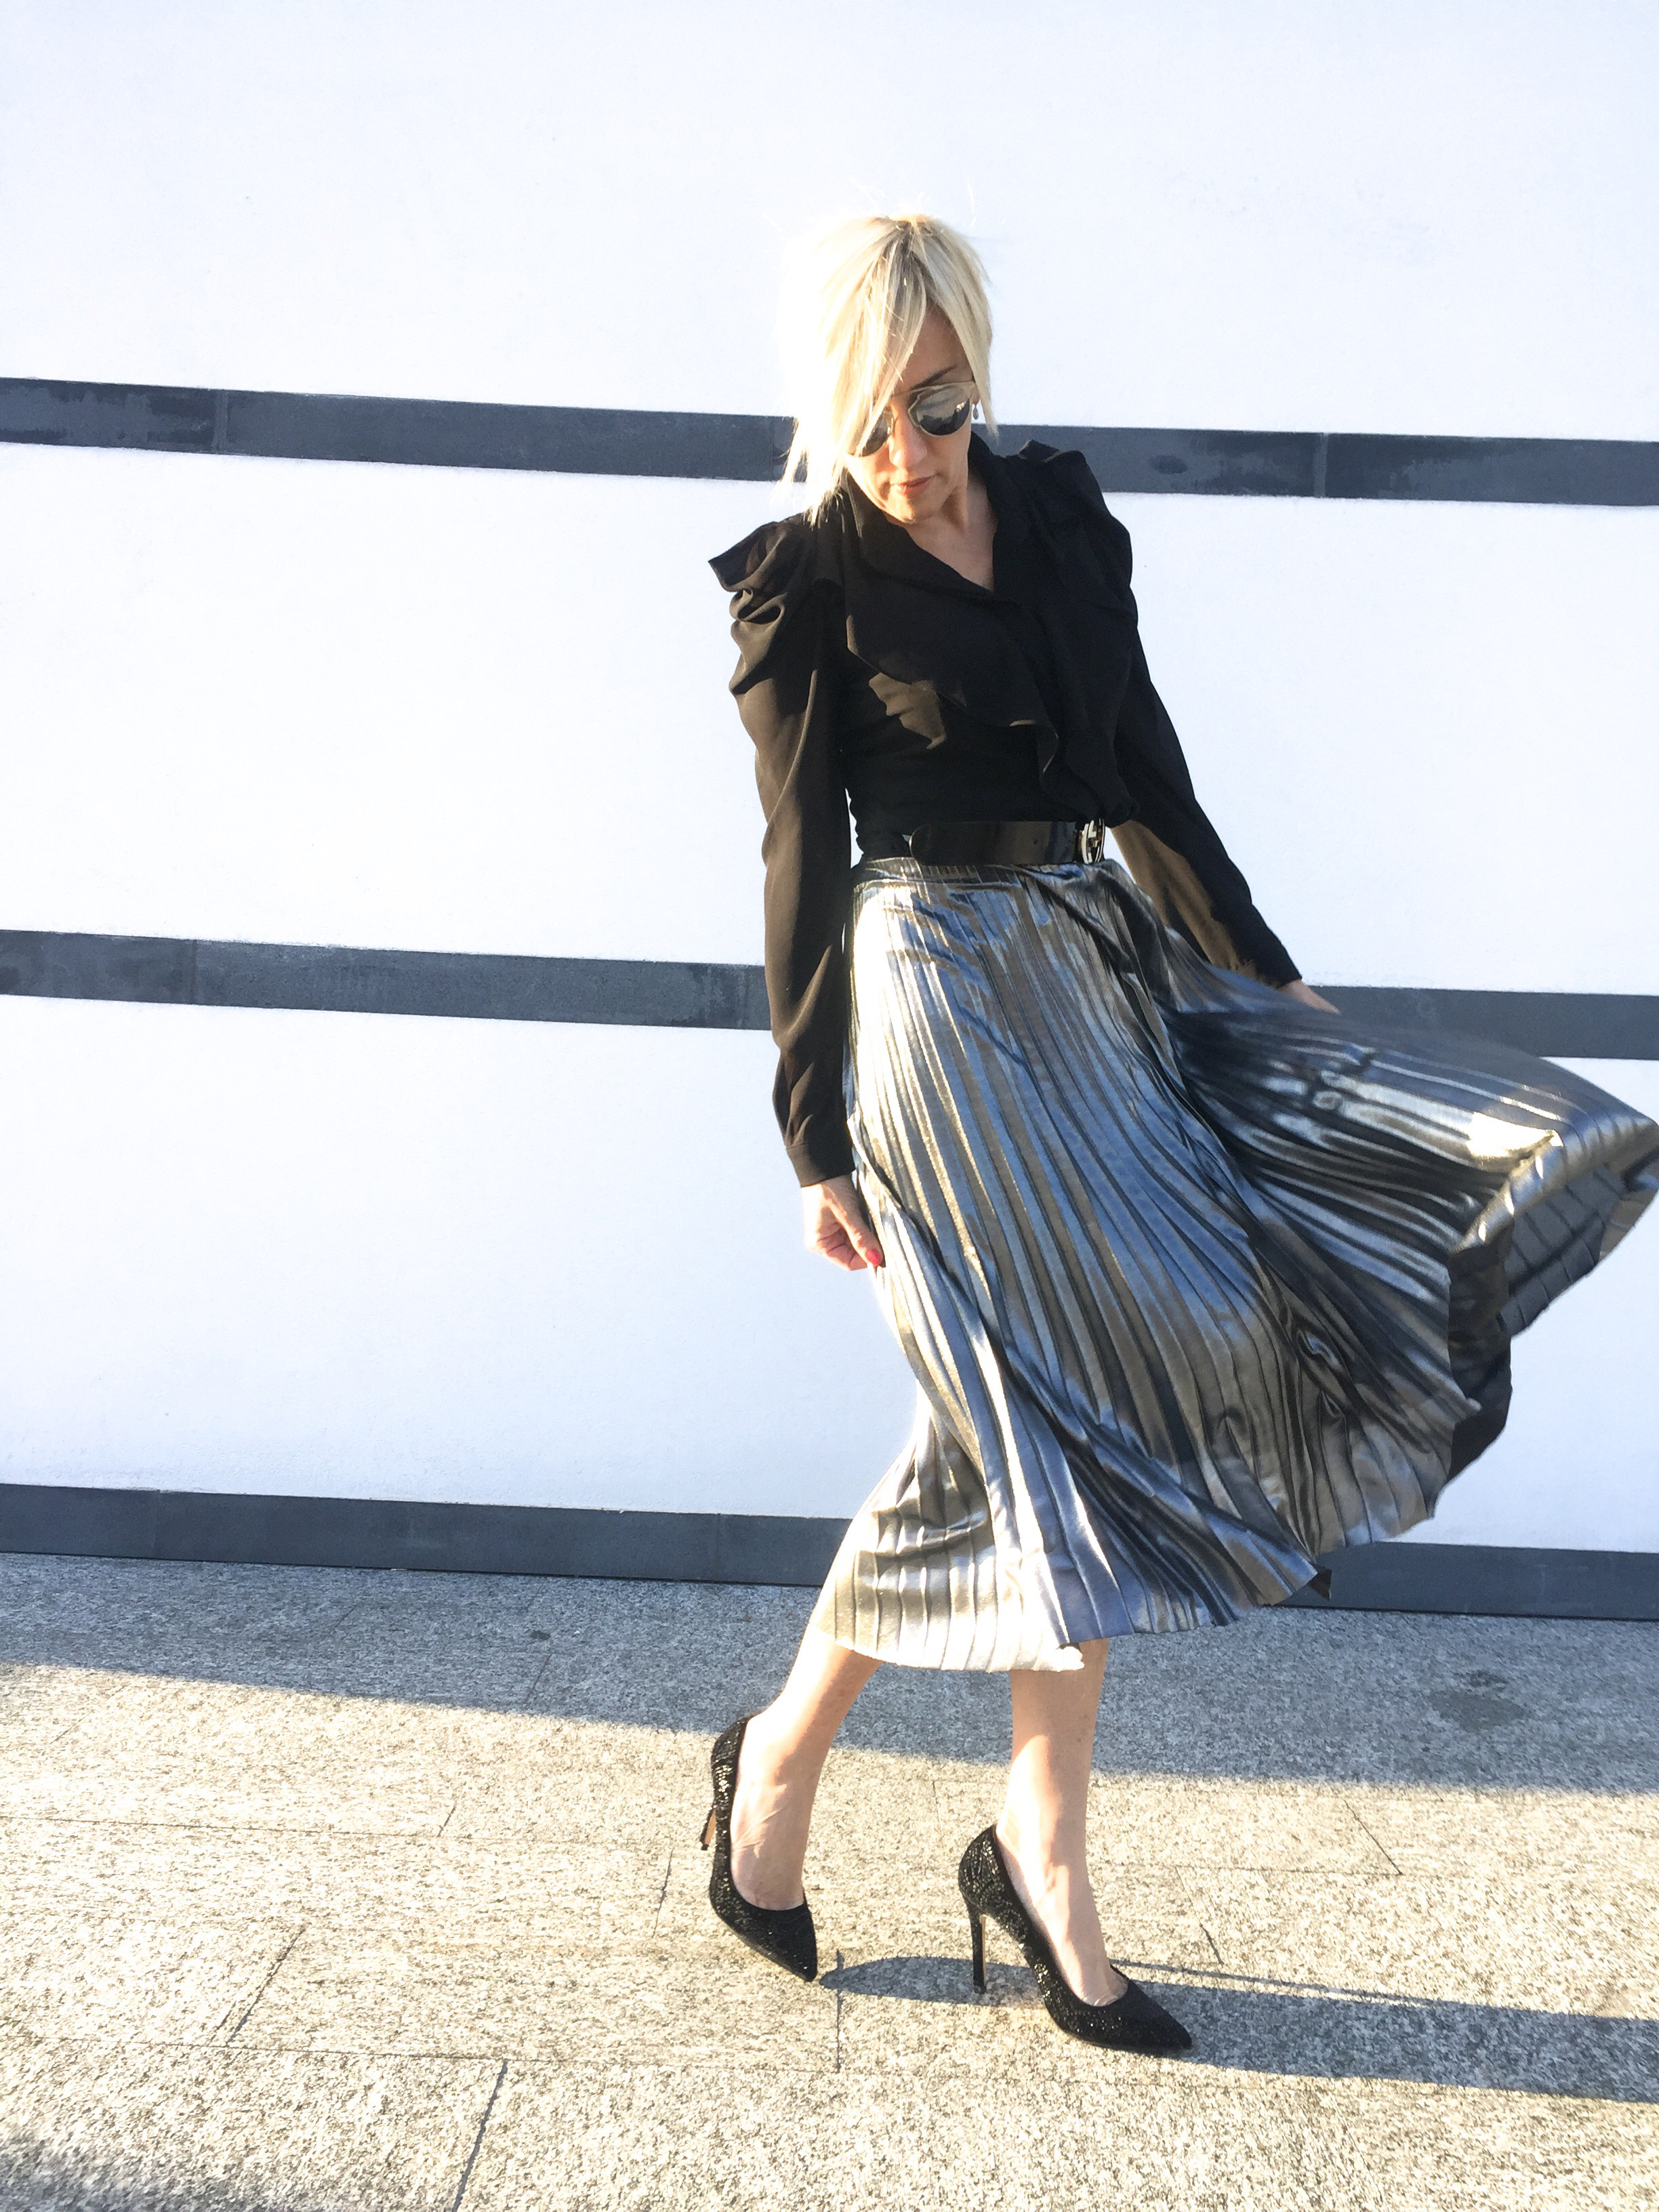 Silver pleated skirt sandro ferrone the mermaid fashion for Costumi nuoto boneswimmer